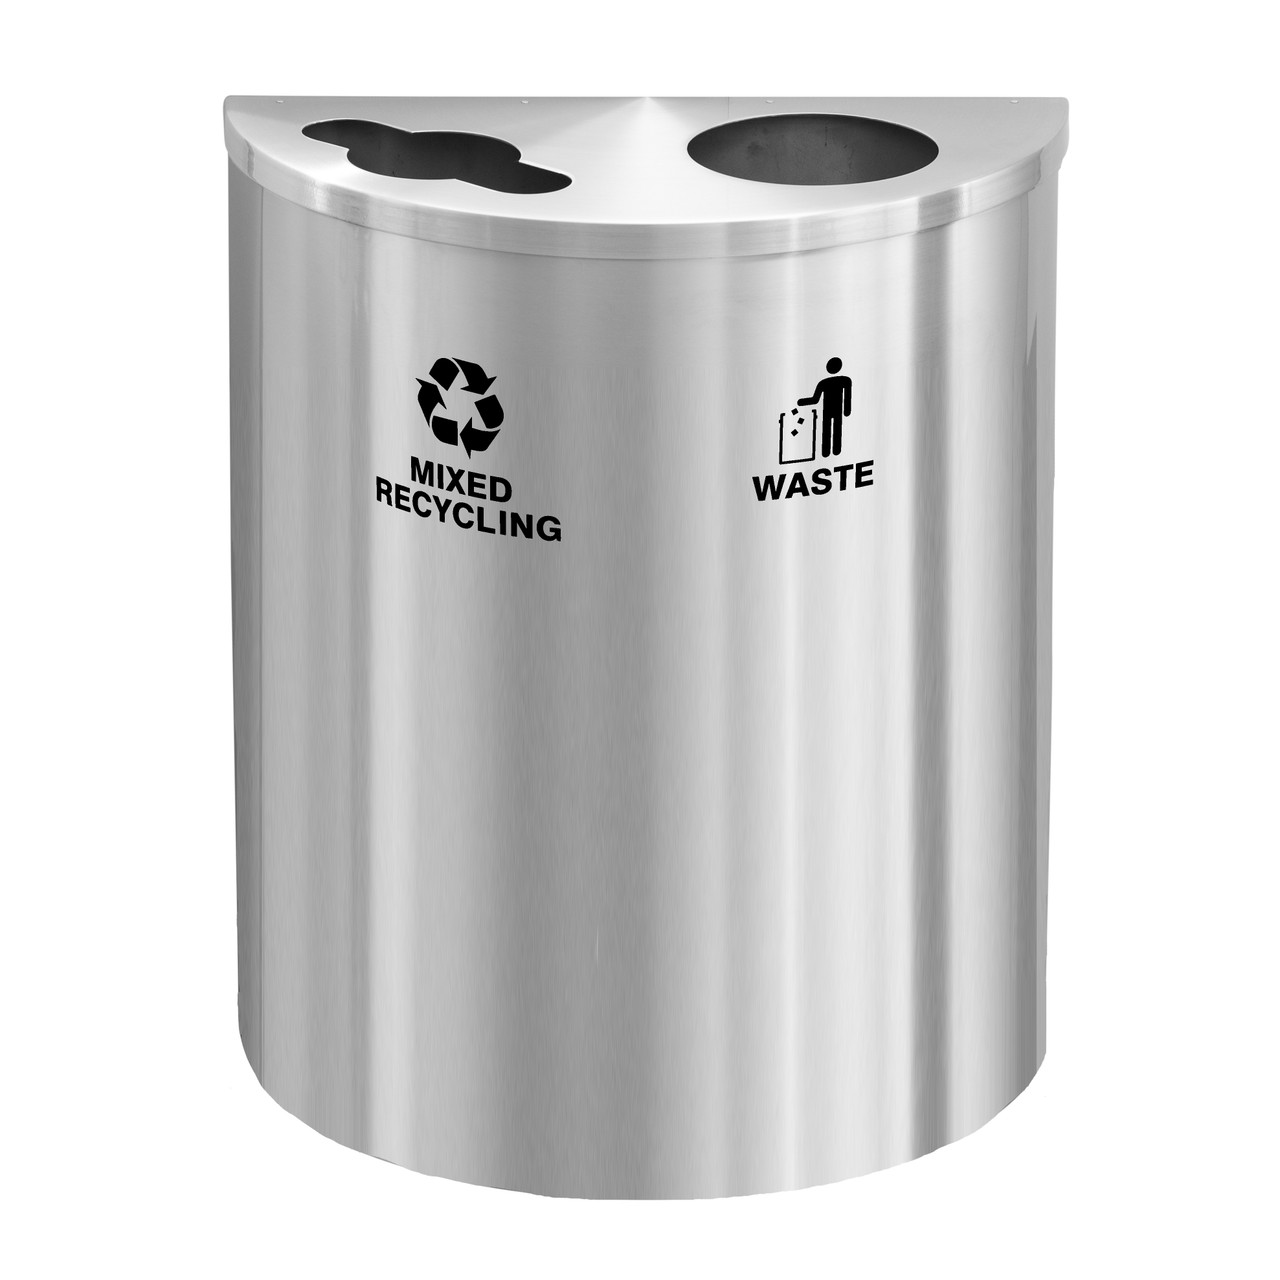 29 Gallon Dual Half Round Recycling Bin w/Hinged Lid MW2499SA (Mixed Recycling/Waste)